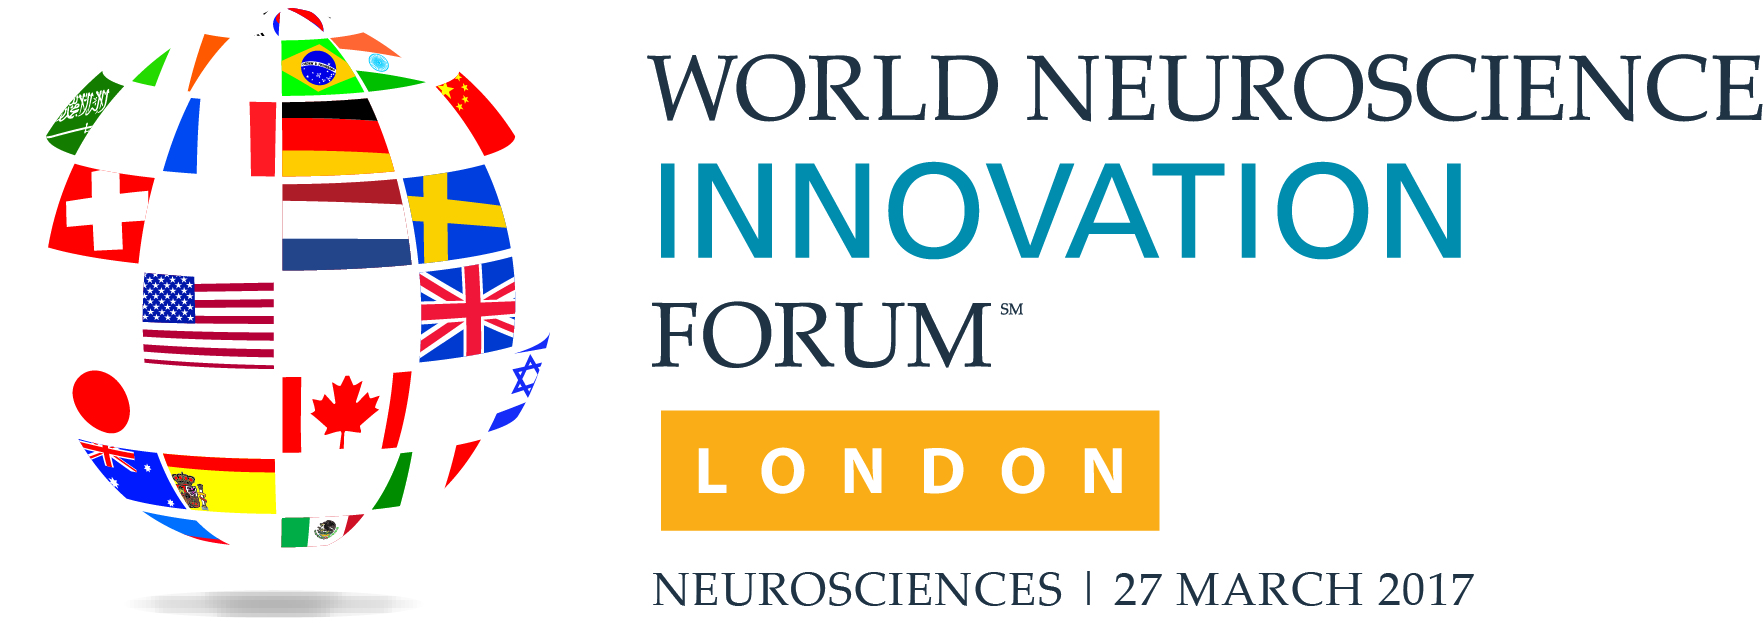 World Neuroscience Innovation Forum